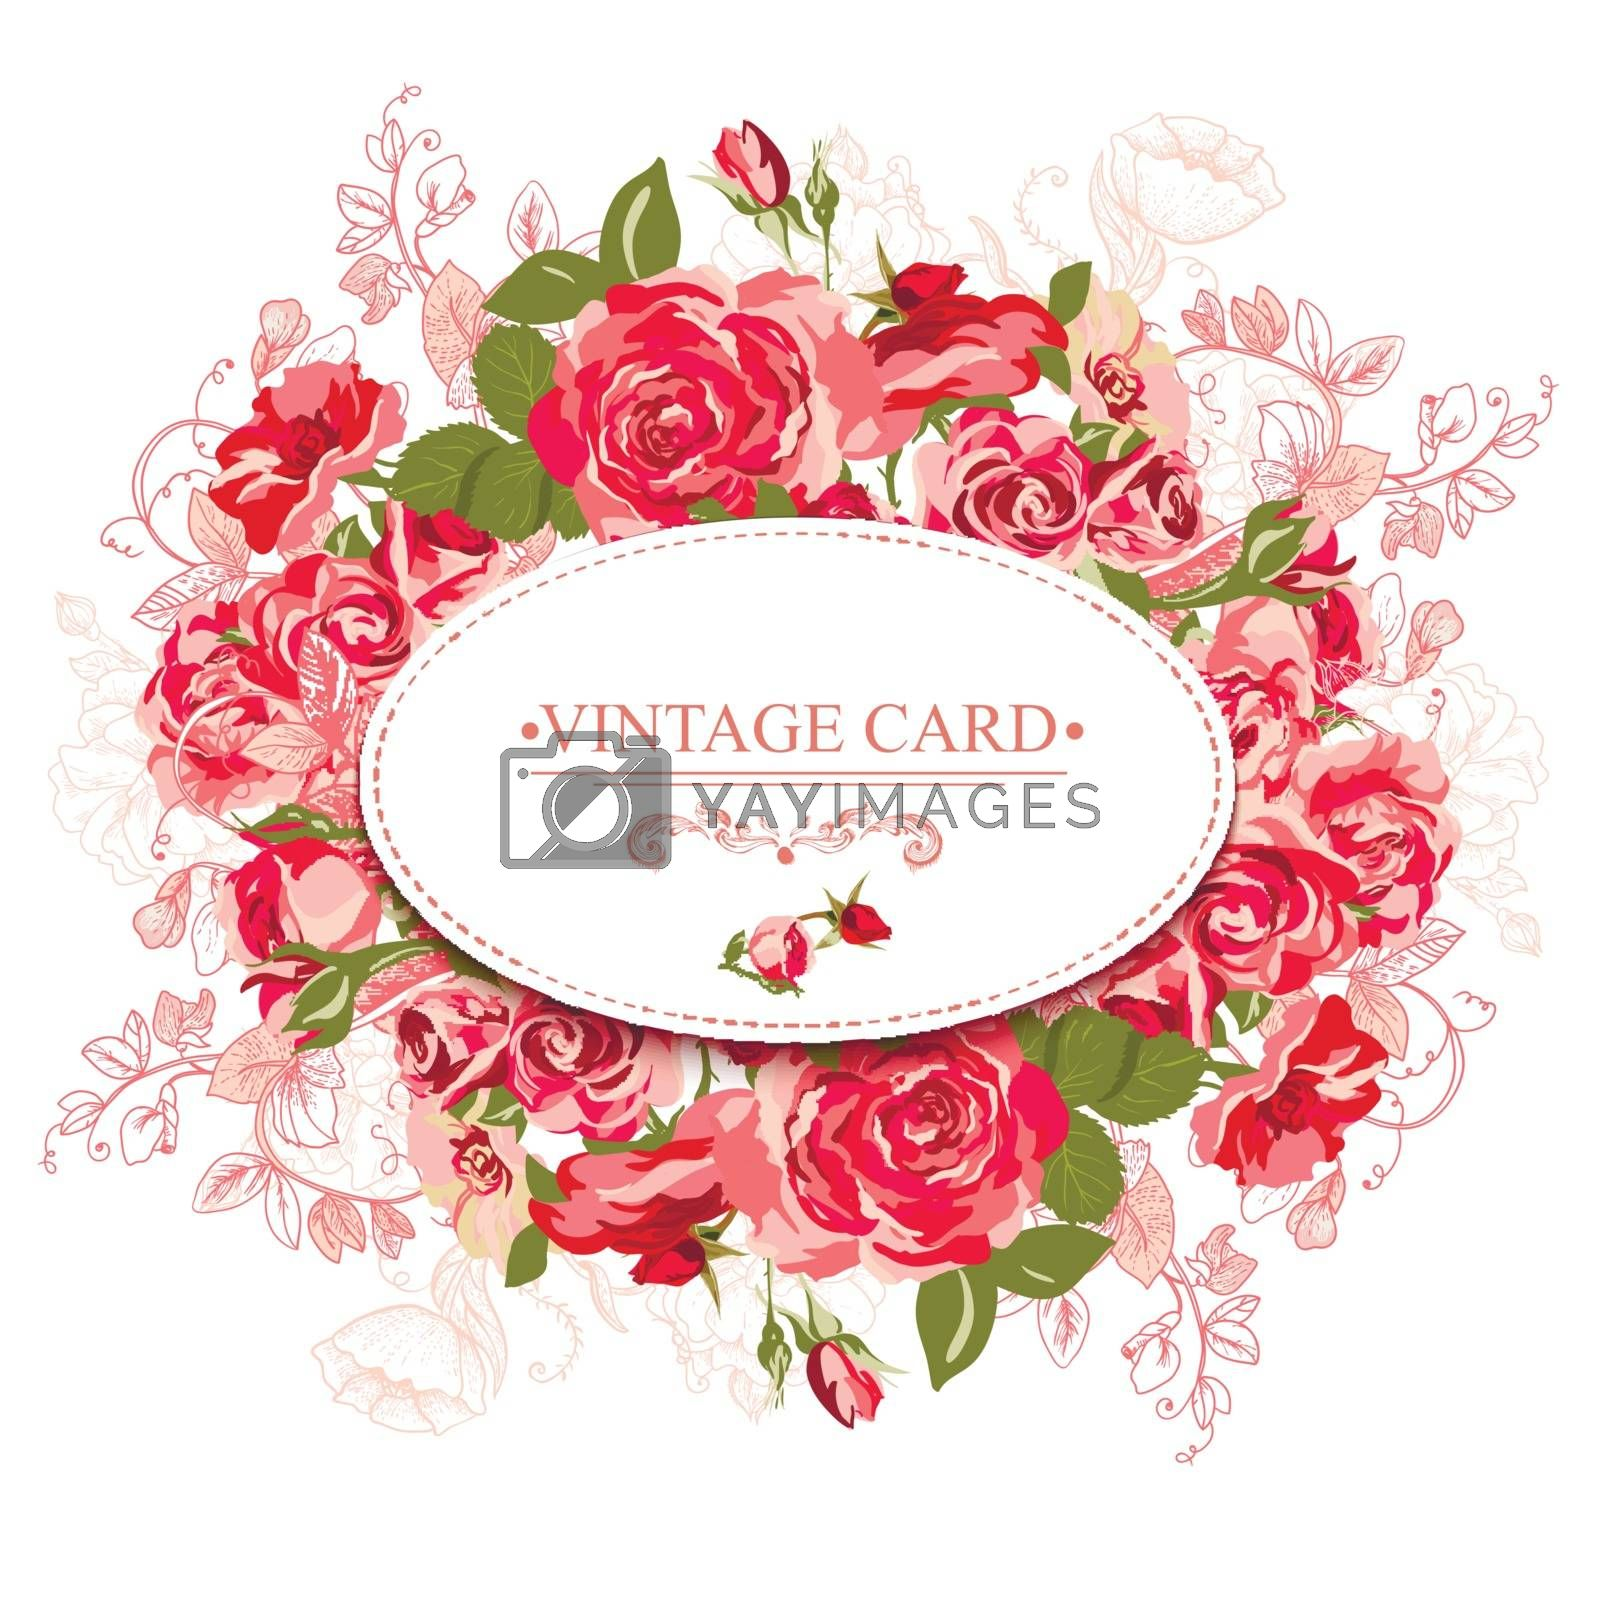 Vintage card with roses.